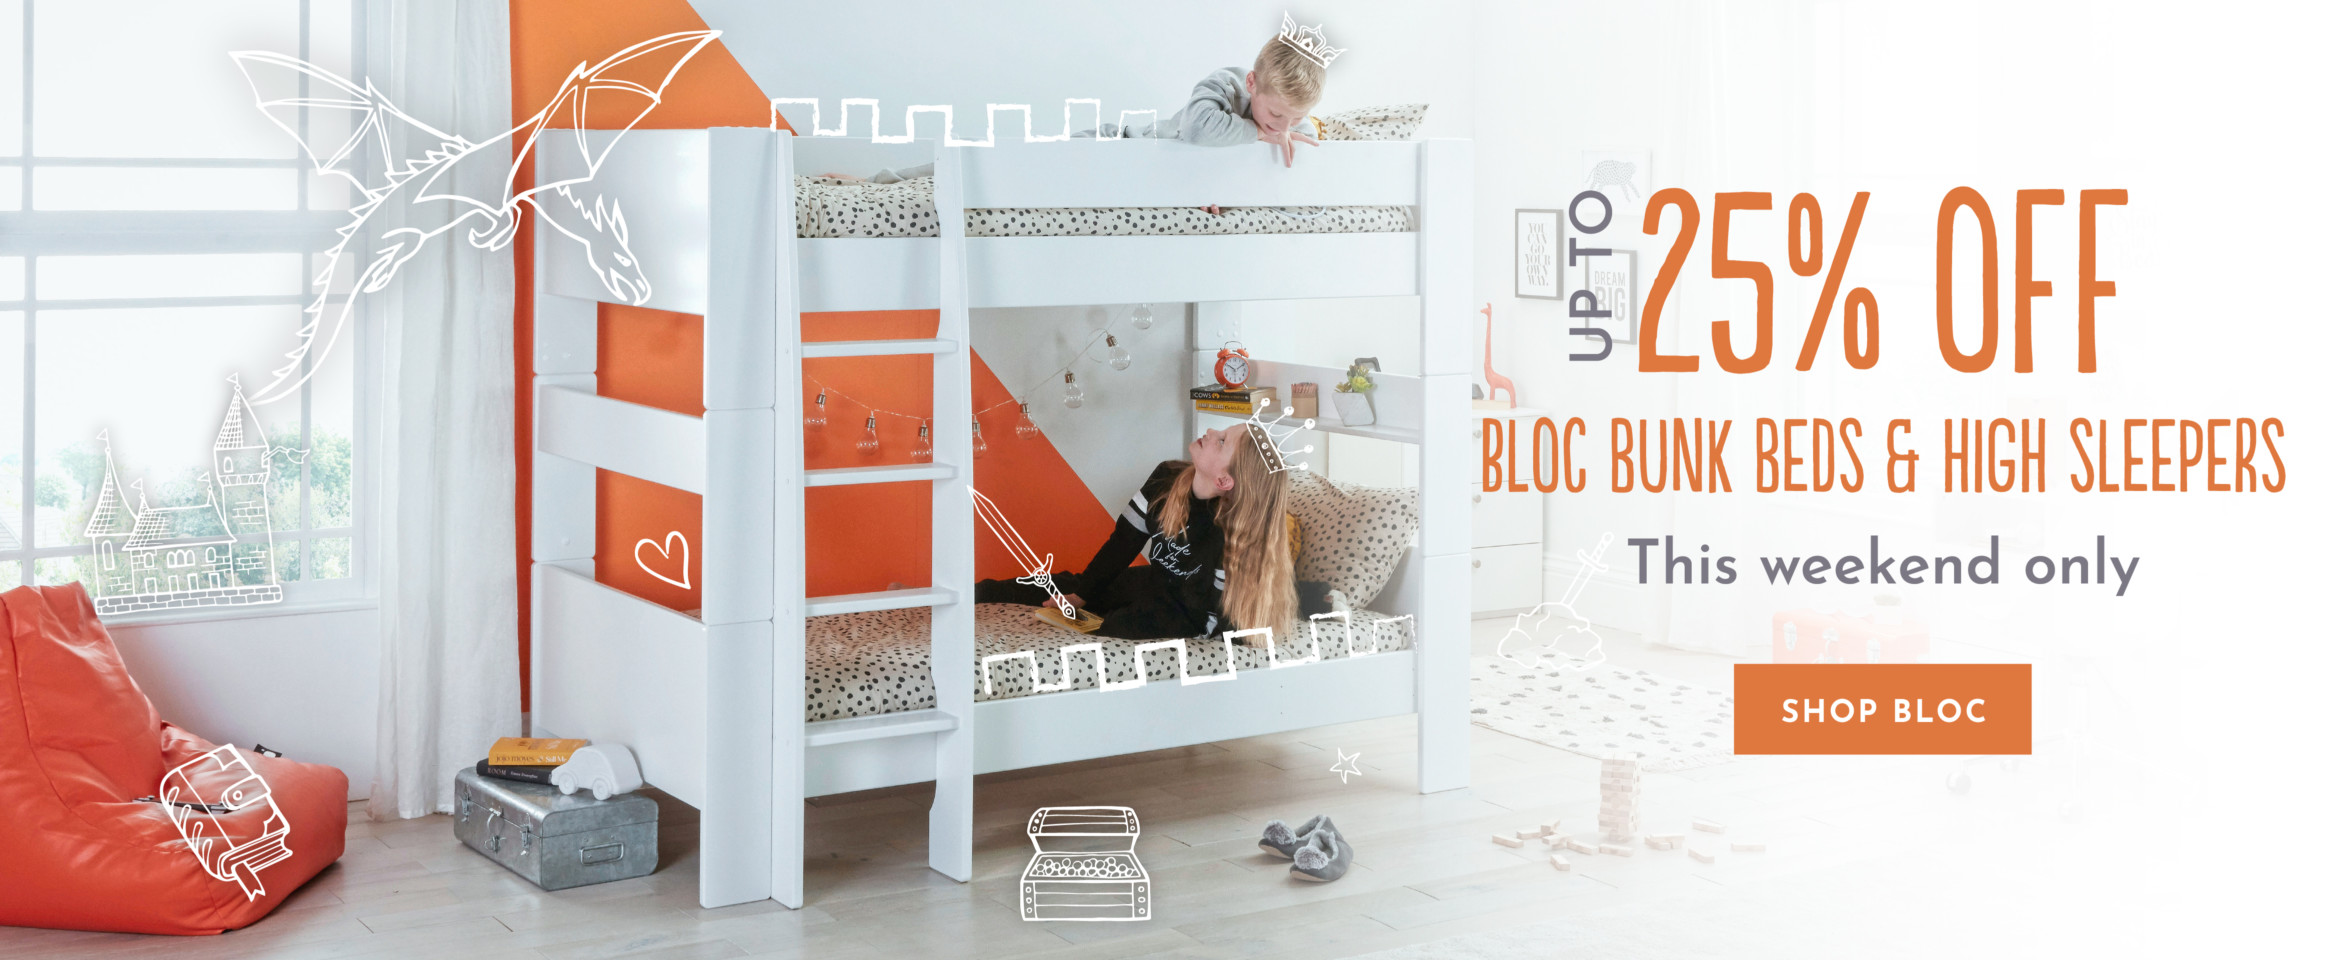 Up to 25% Off Bloc Bunk Beds and High Sleepers - This weekend only